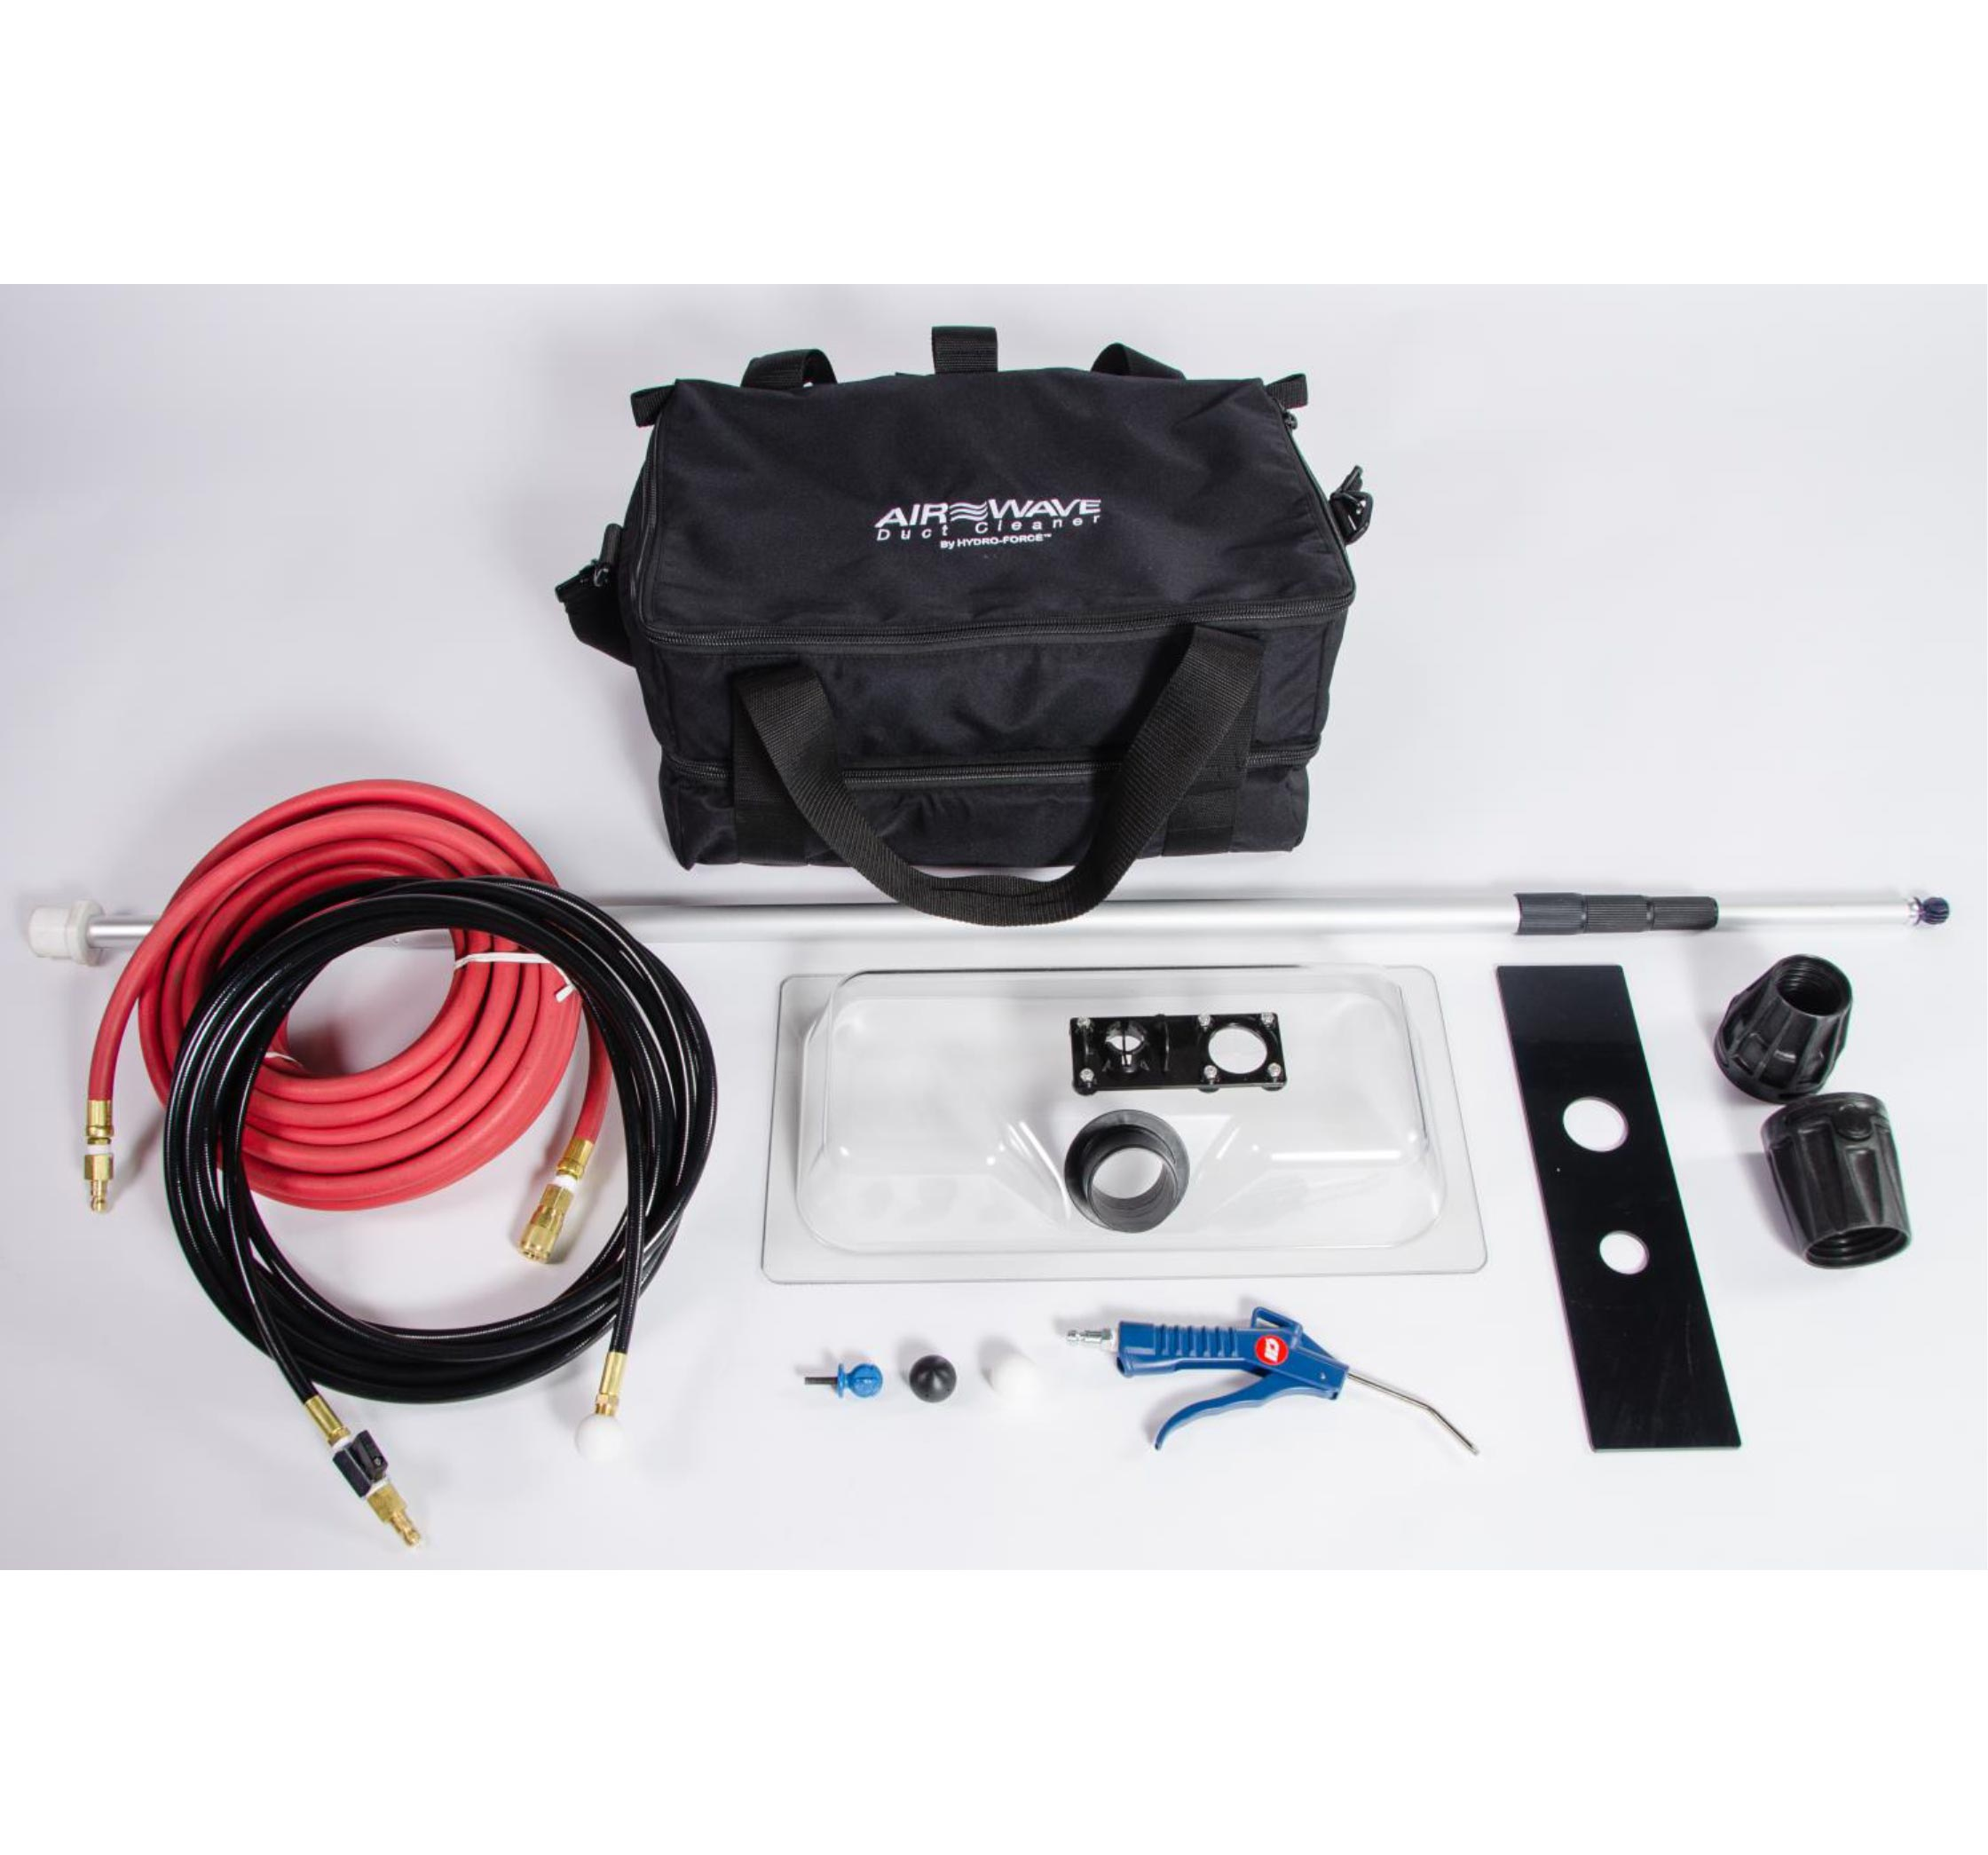 Air Wave Duct Cleaning System AC040 FREE Shipping 1682-2987